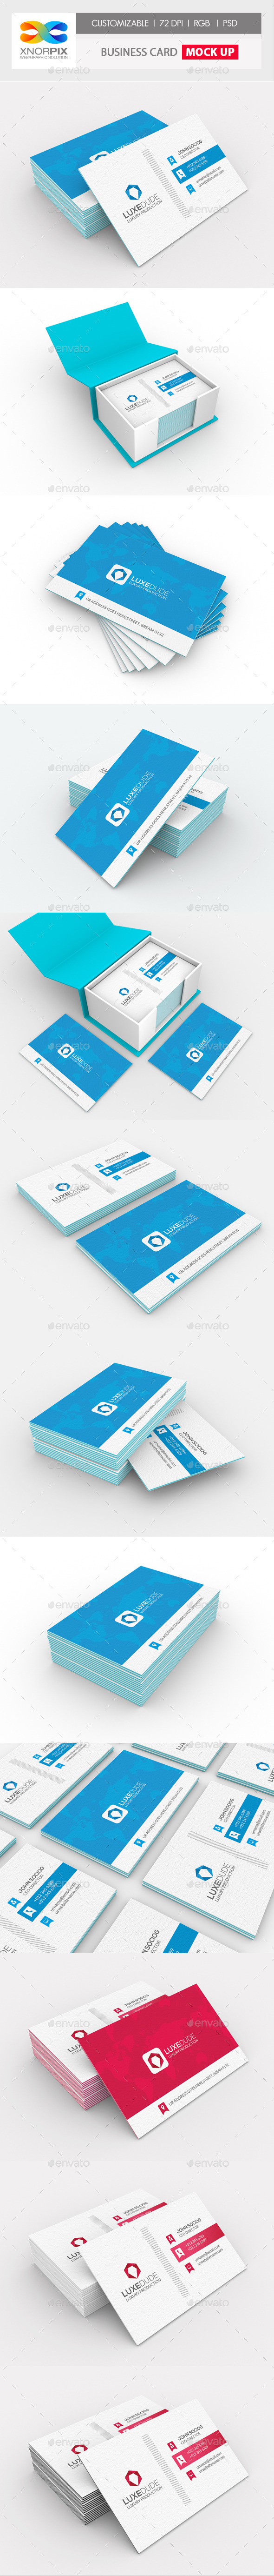 GraphicRiver Luxe Business Card Mock-up 10736603